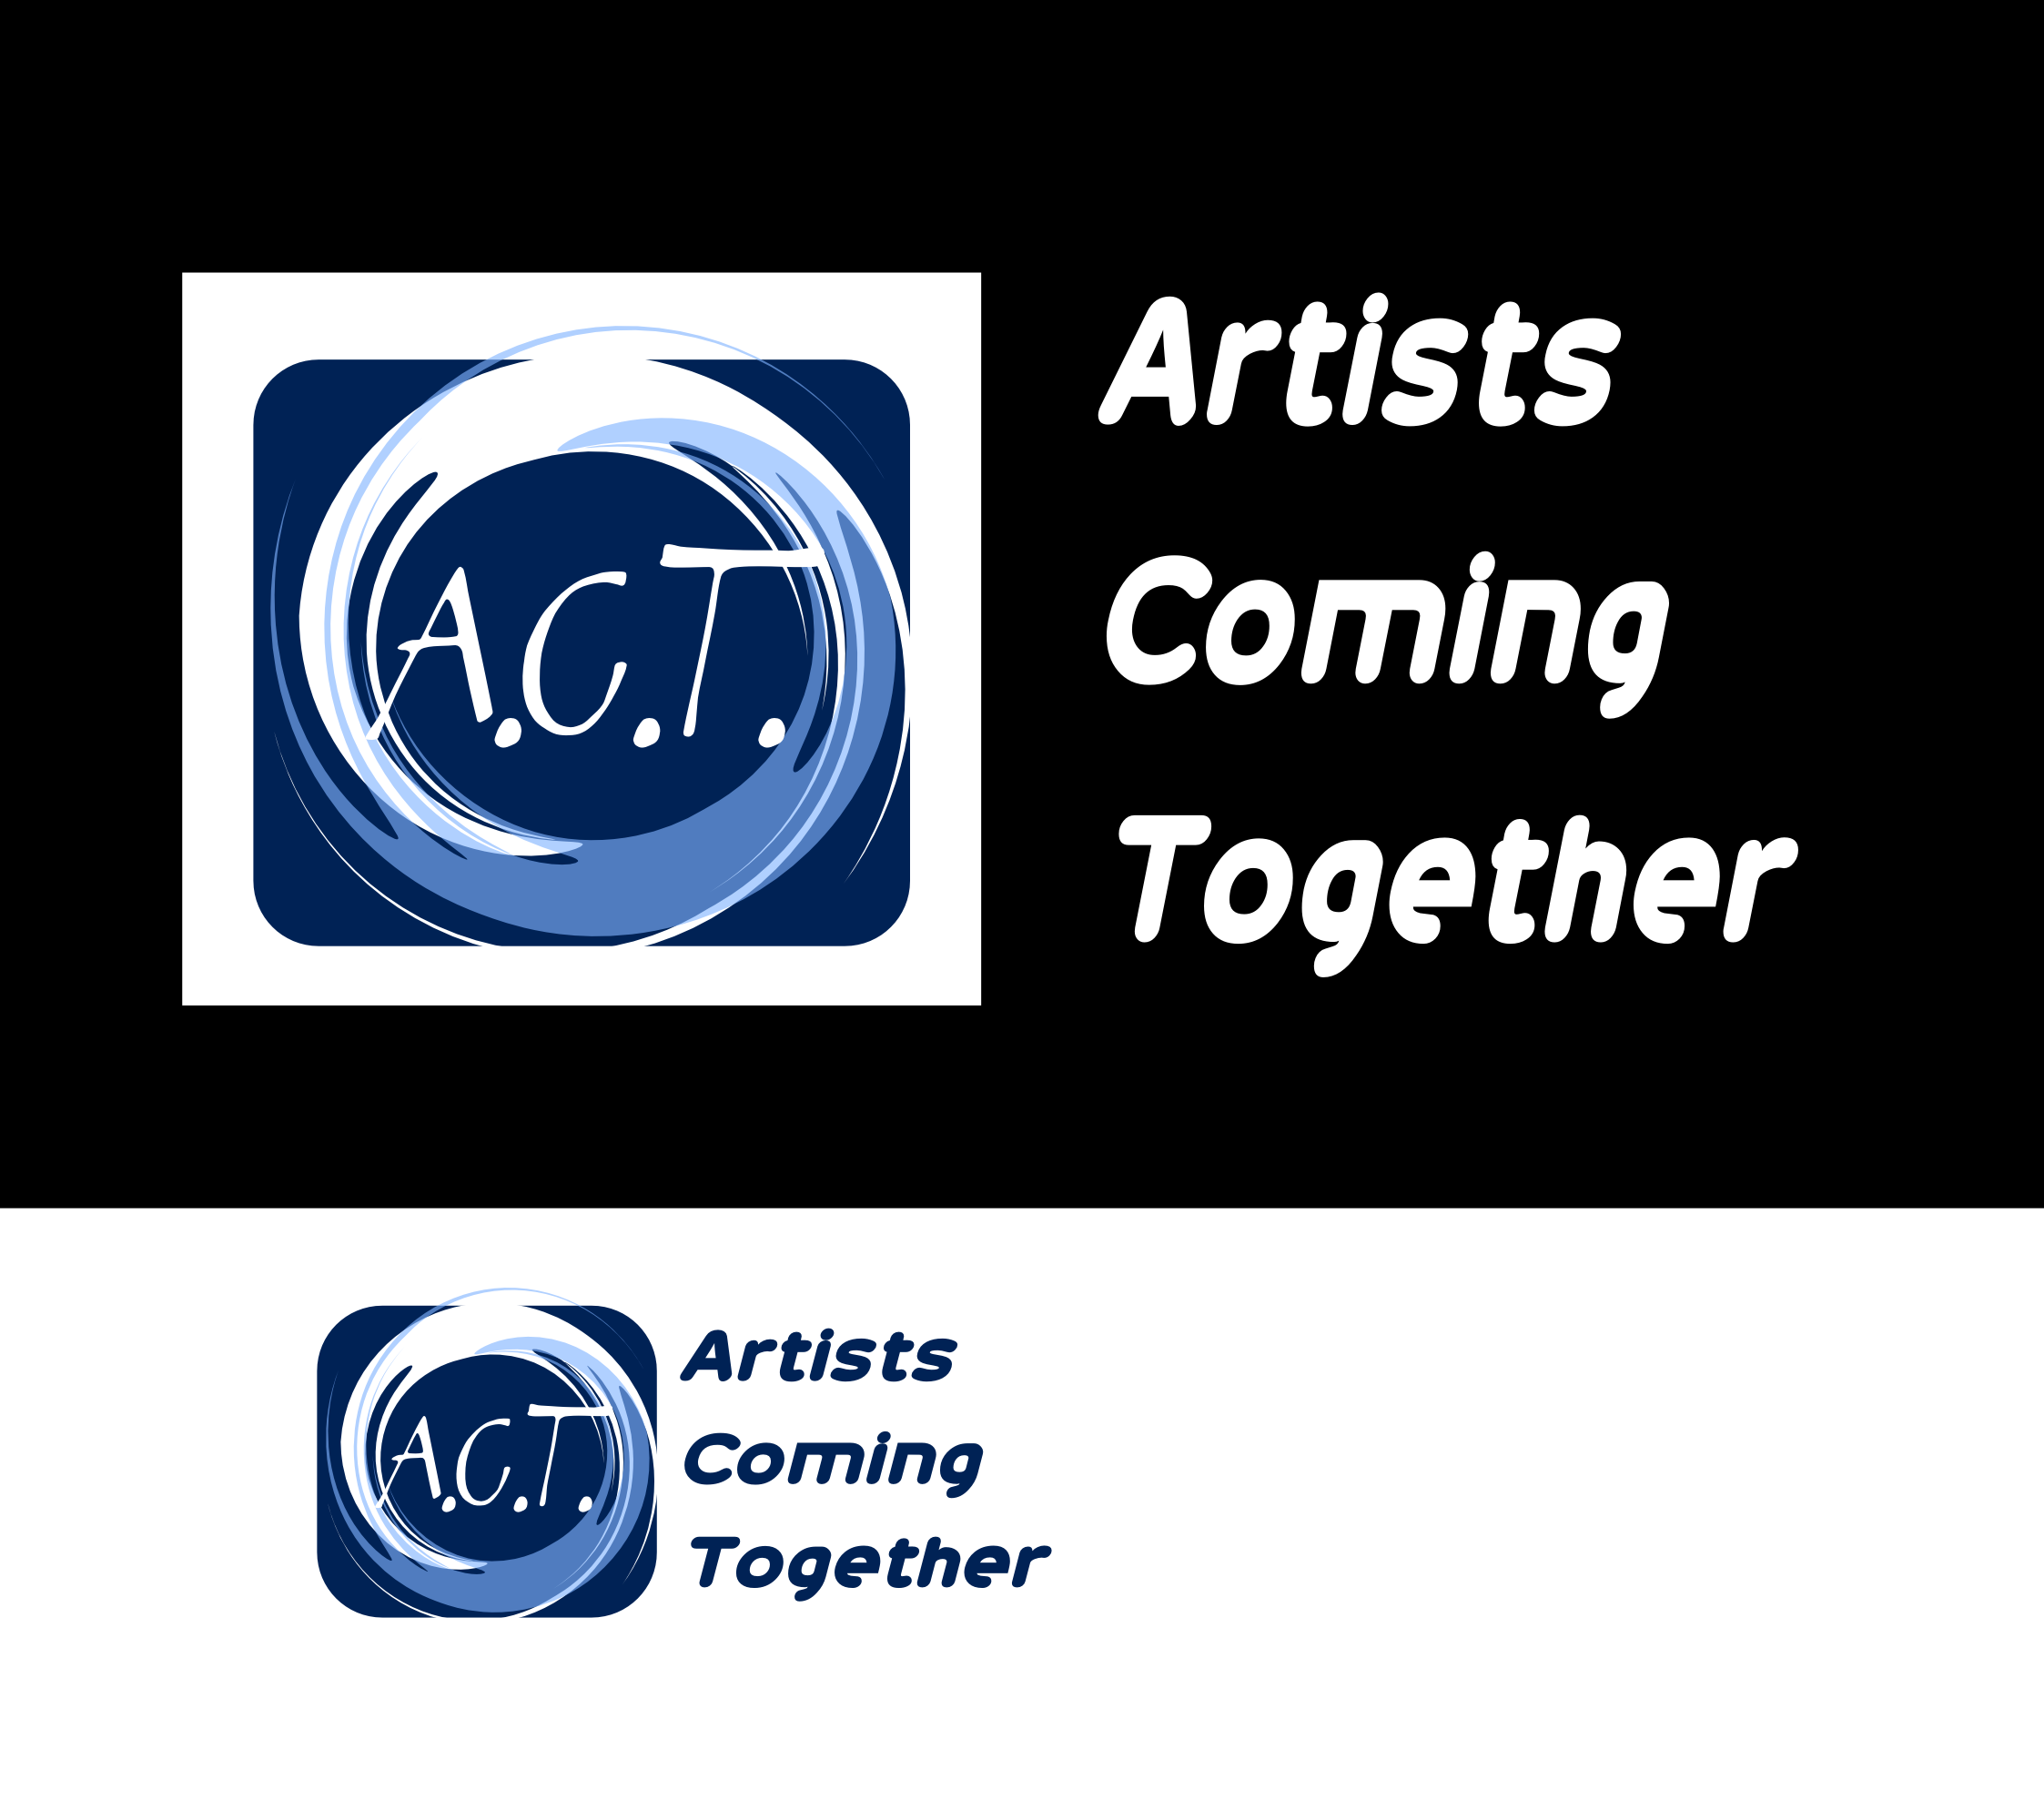 Logo Design by Arindam Khanda - Entry No. 30 in the Logo Design Contest Creative Logo Design for A.C.T. Artists Coming Together.